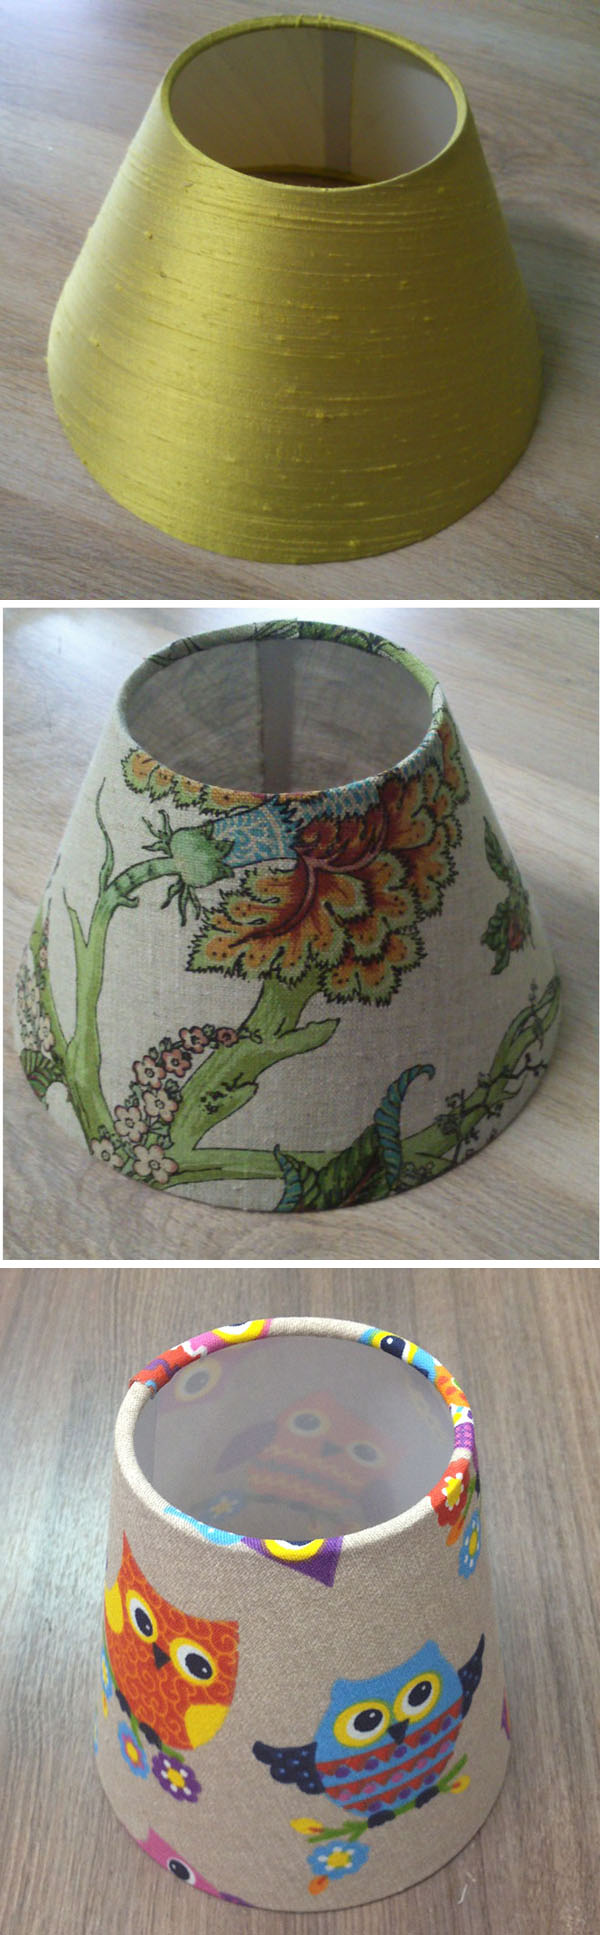 Небольшие абажуры для люстр и бра. Small lampshades for wall lamps and chandeliers